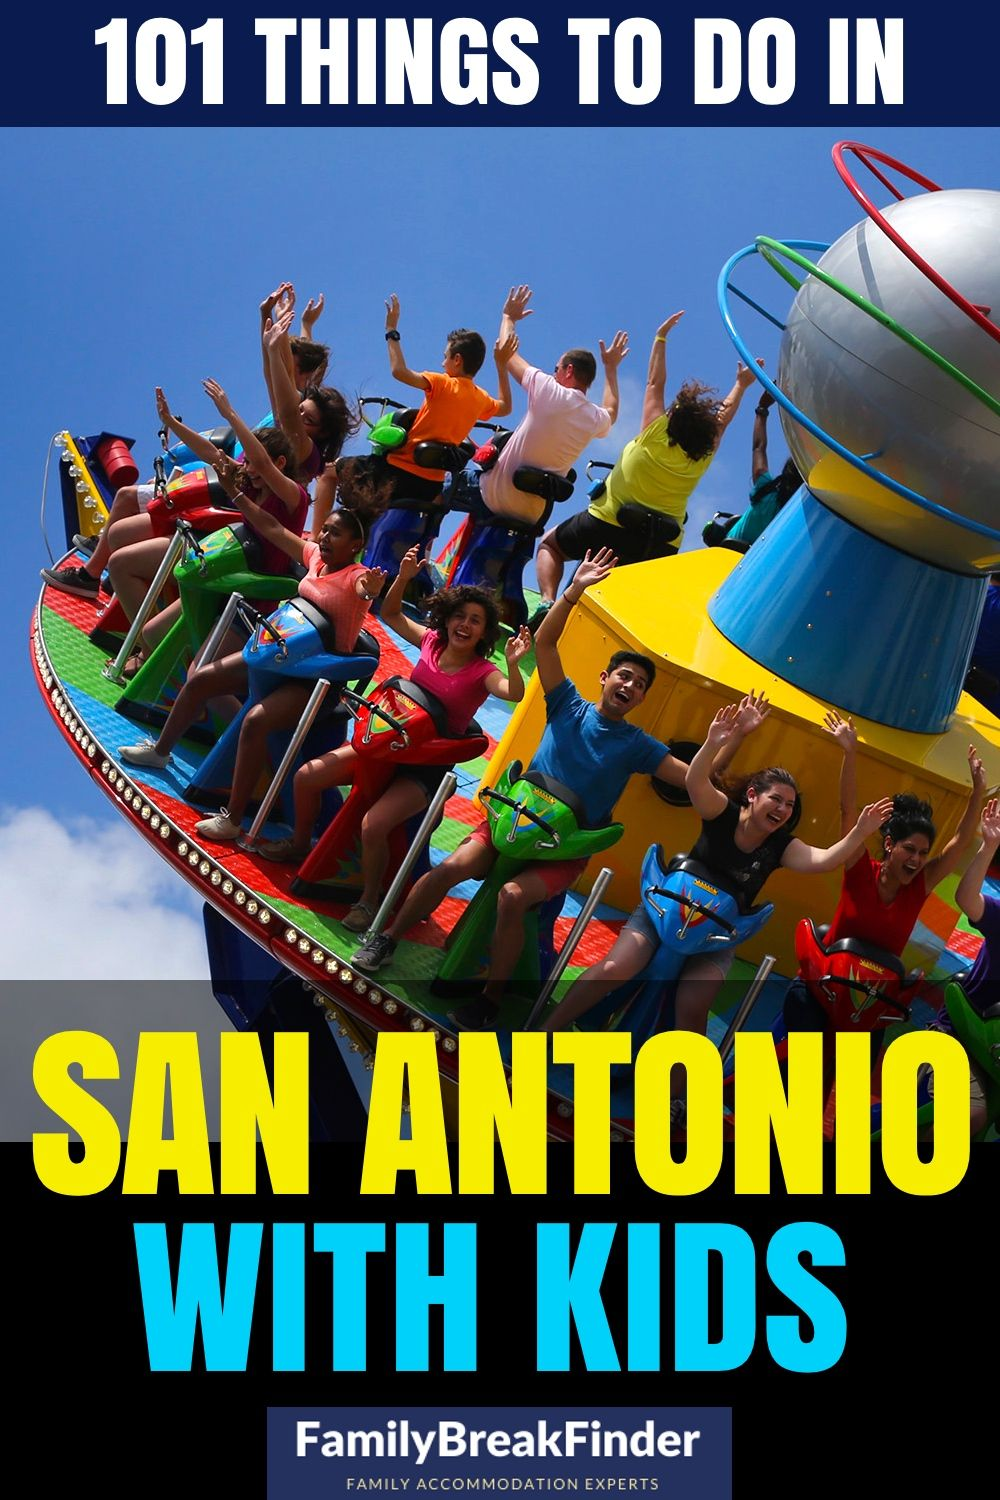 101 Best Things To Do With Kids In San Antonio in 2020